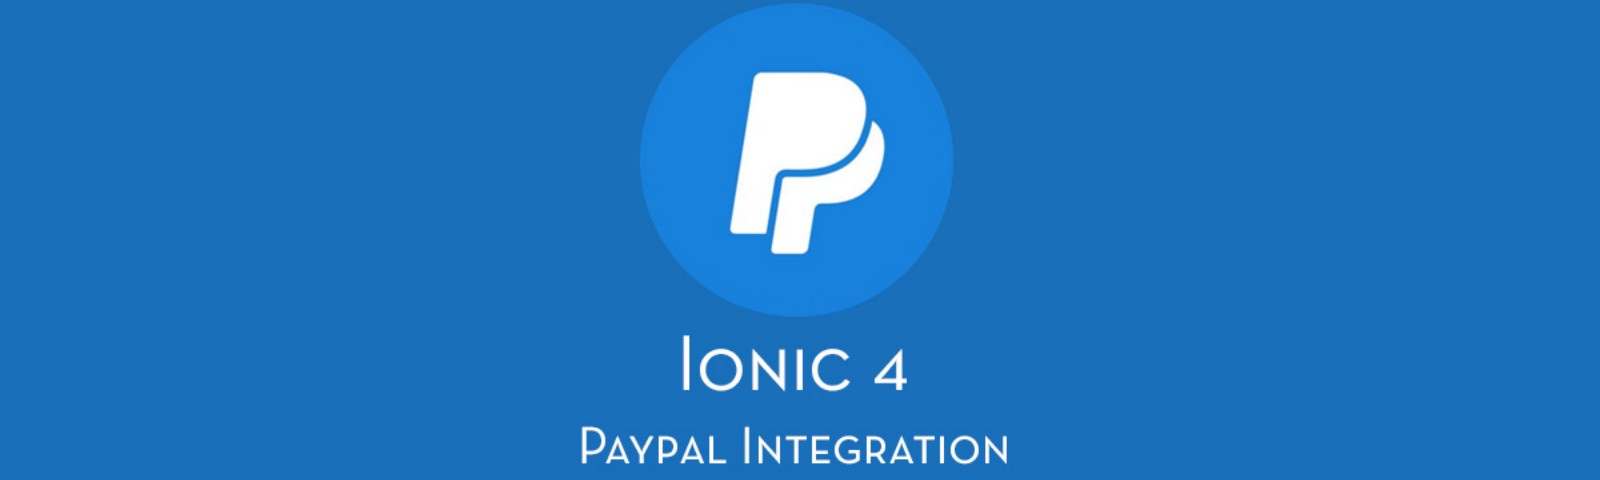 Ionic 4 PayPal payment integration - for Apps and PWA